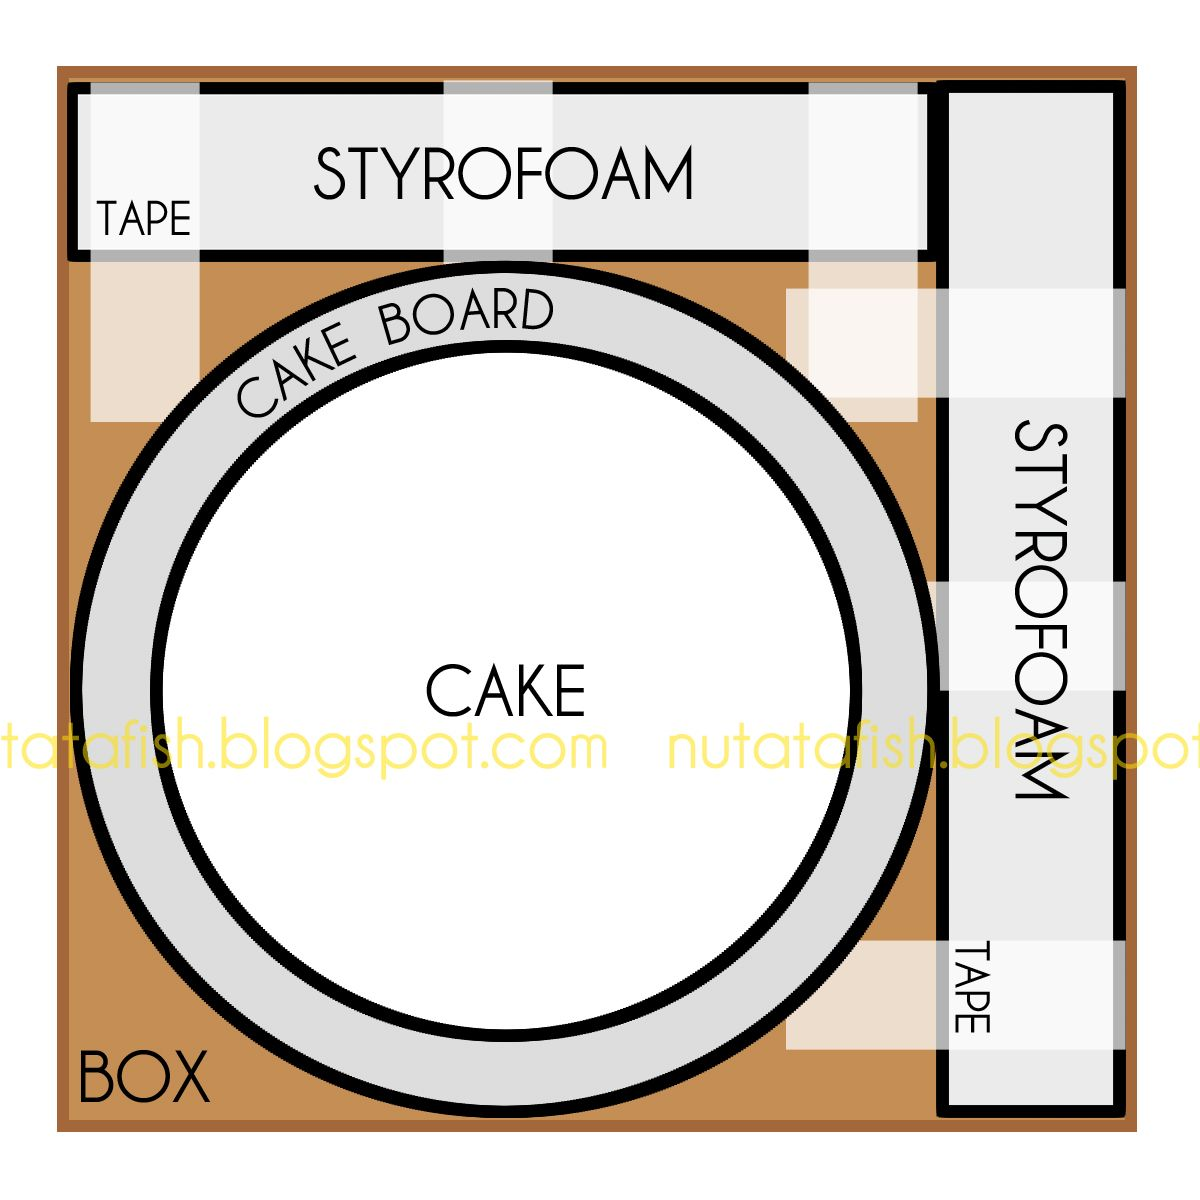 Sigrid and DJ's Wedding Cake  I made a wedding cake for a friend last weekend. I did my research, used a trusted recipe, and mapped out a ...